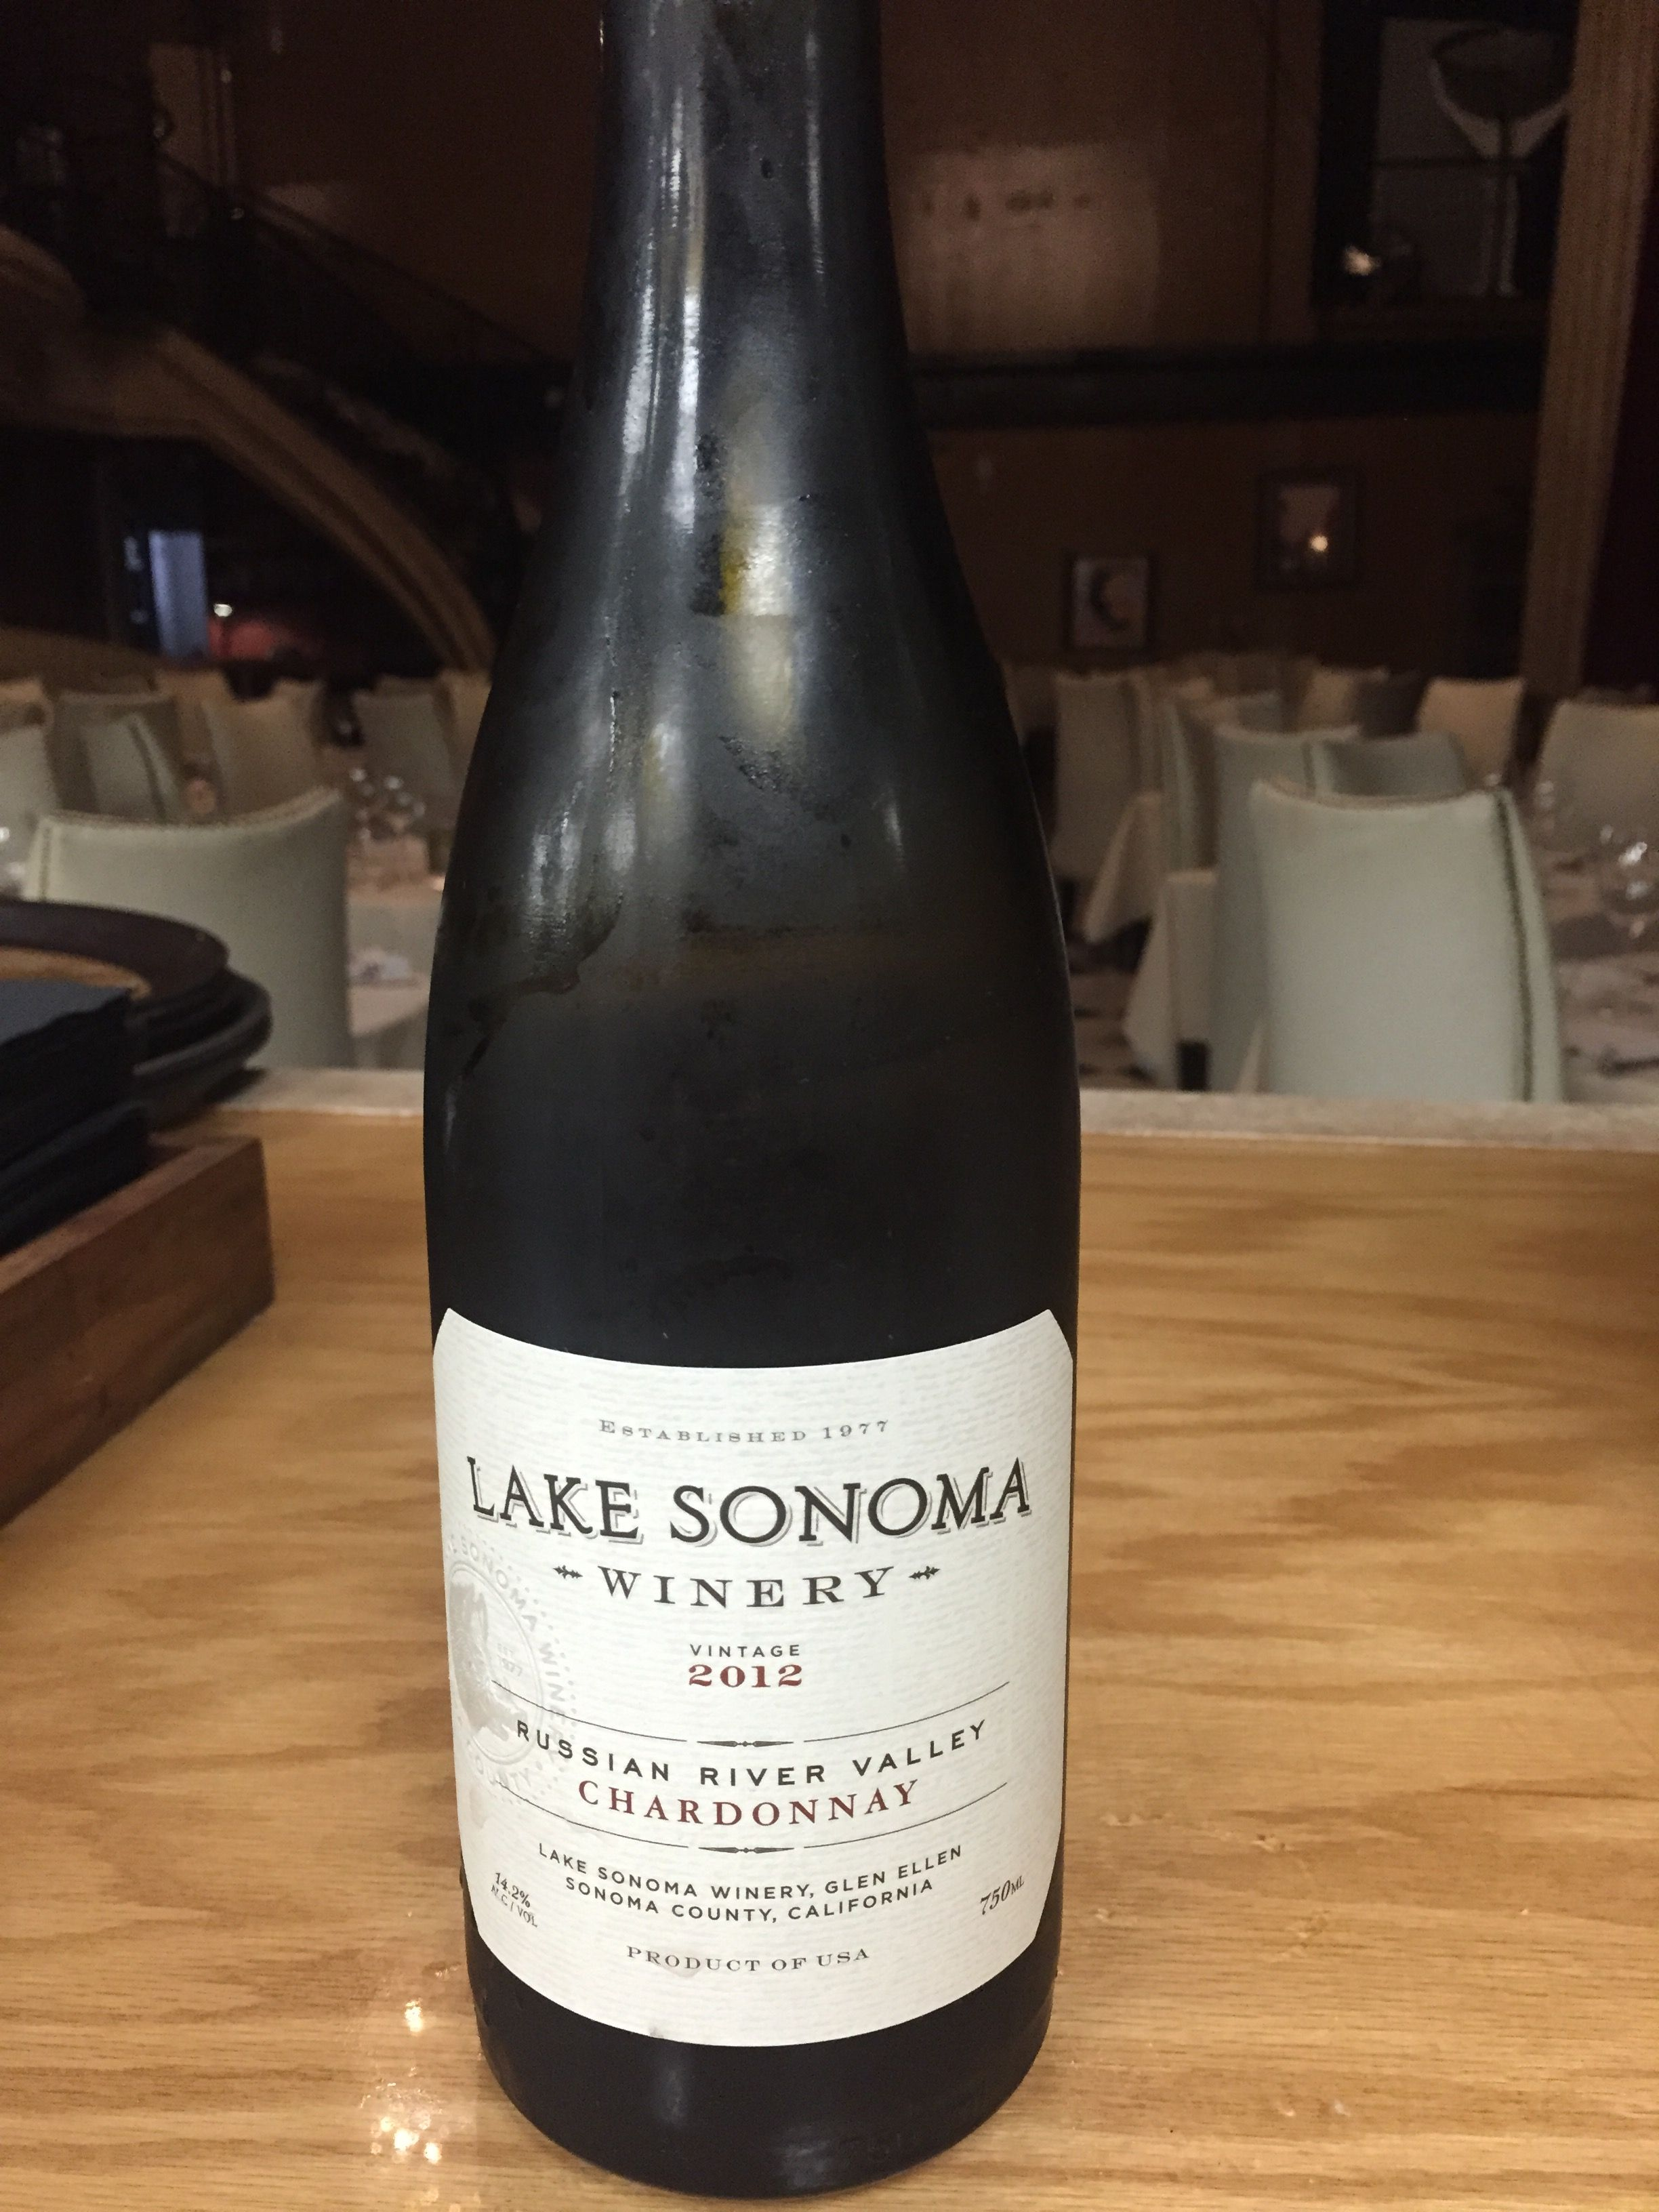 Lake Sonoma Chardonnay, Russian River ('12) $12, $48 - Easy drinking with a creamy texture and flavors of honey, peach, and orange